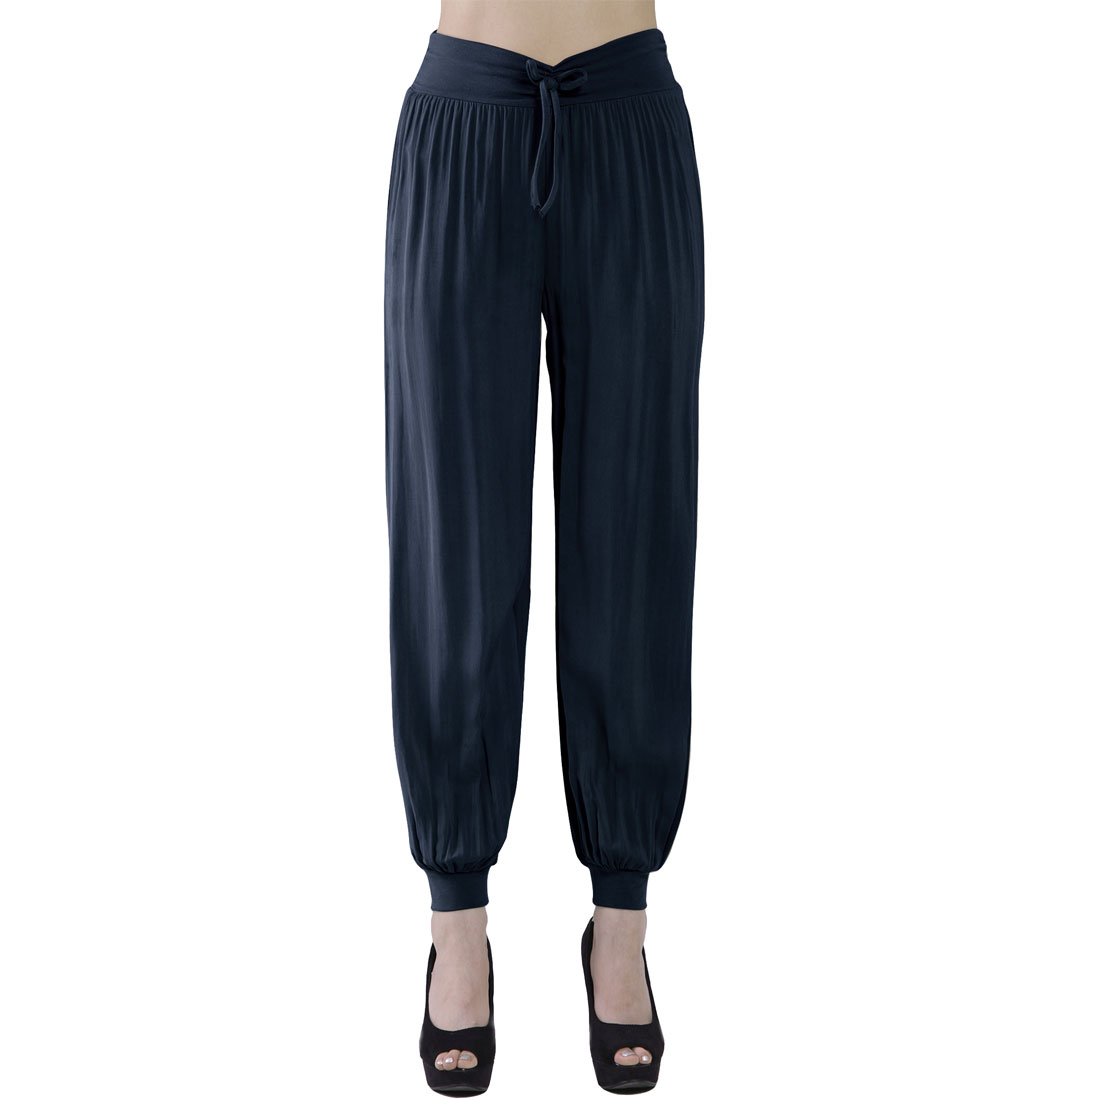 Woman Leisure Bowknot Detail Elastic Waist Trousers Navy Blue XS